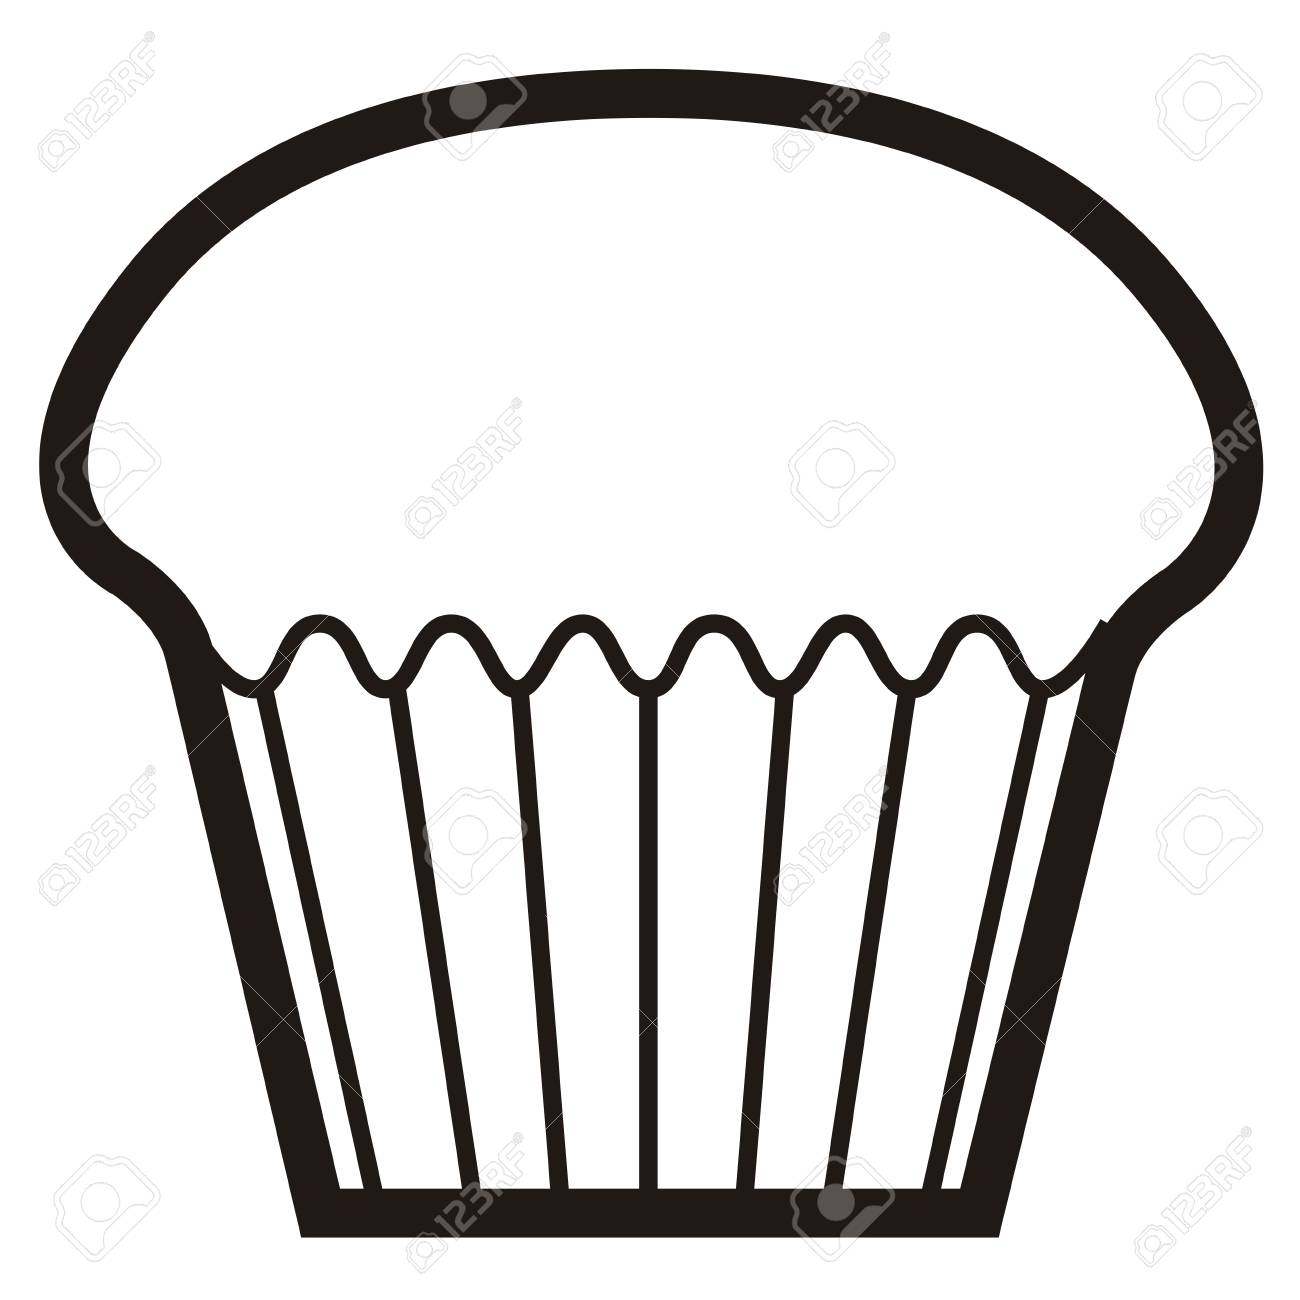 Isolated muffin icon in black and white illustration..